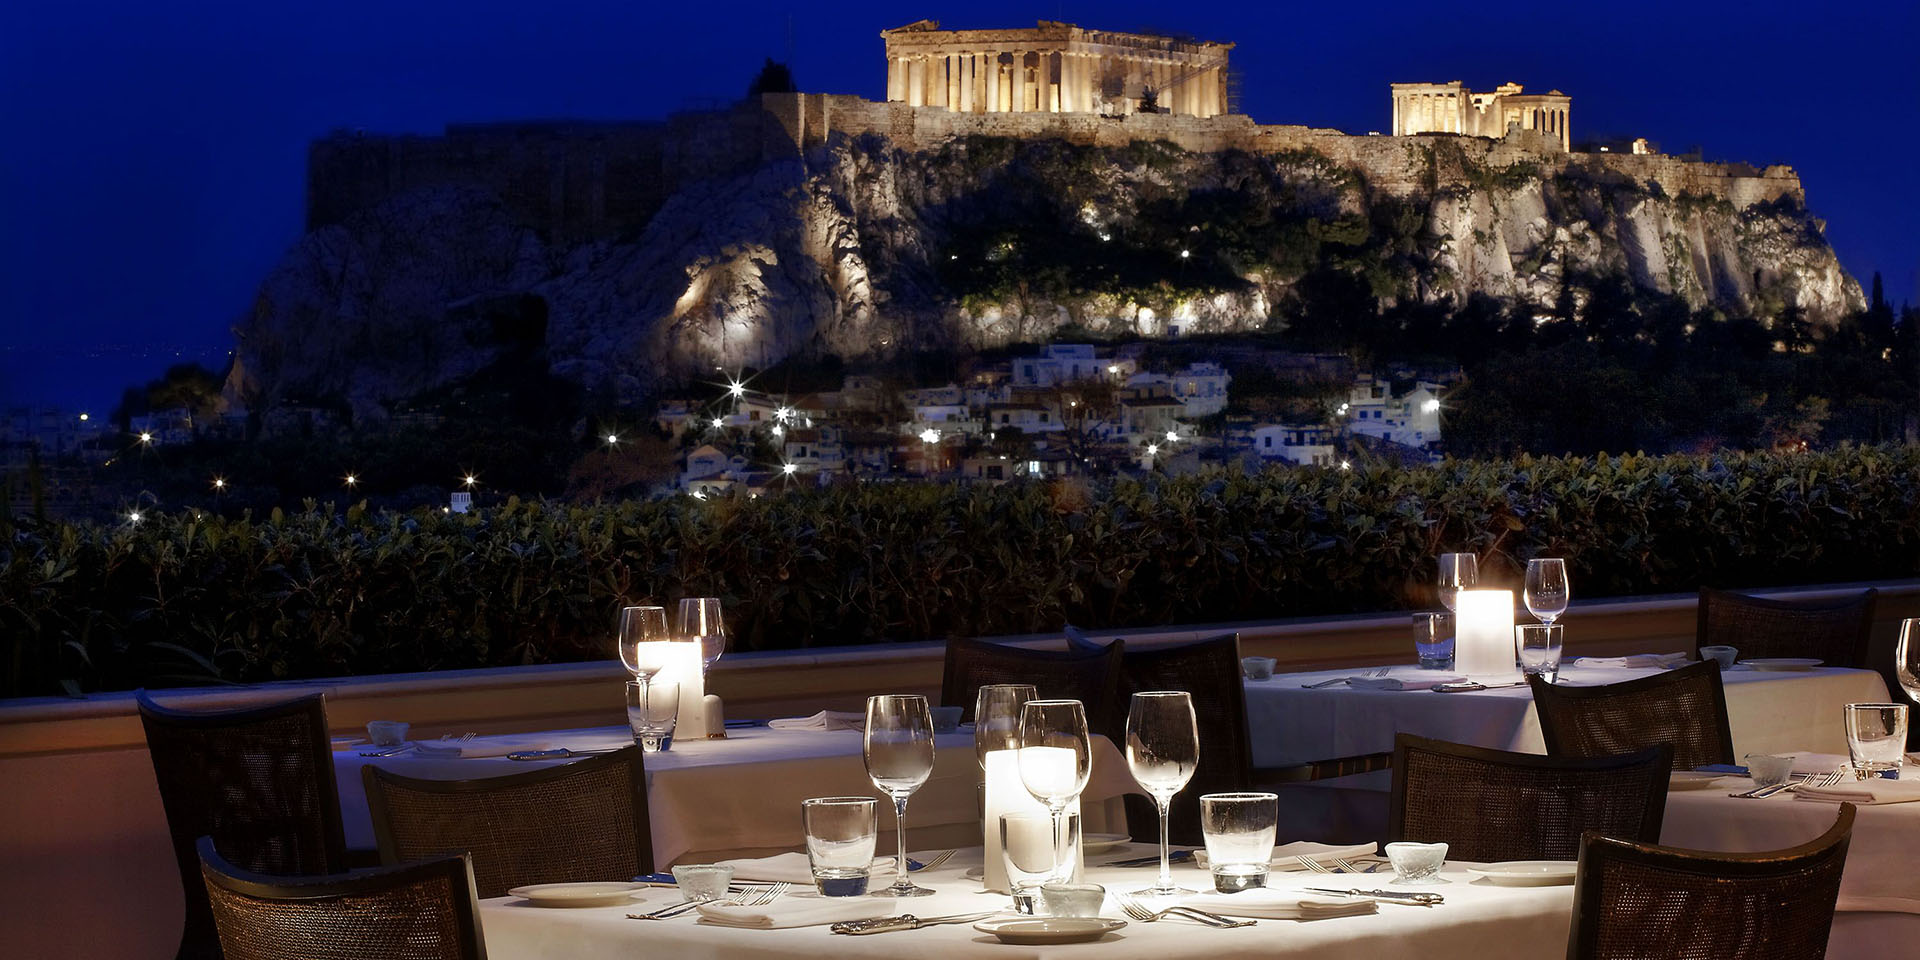 Best Place for Sunset Dinner in Athens